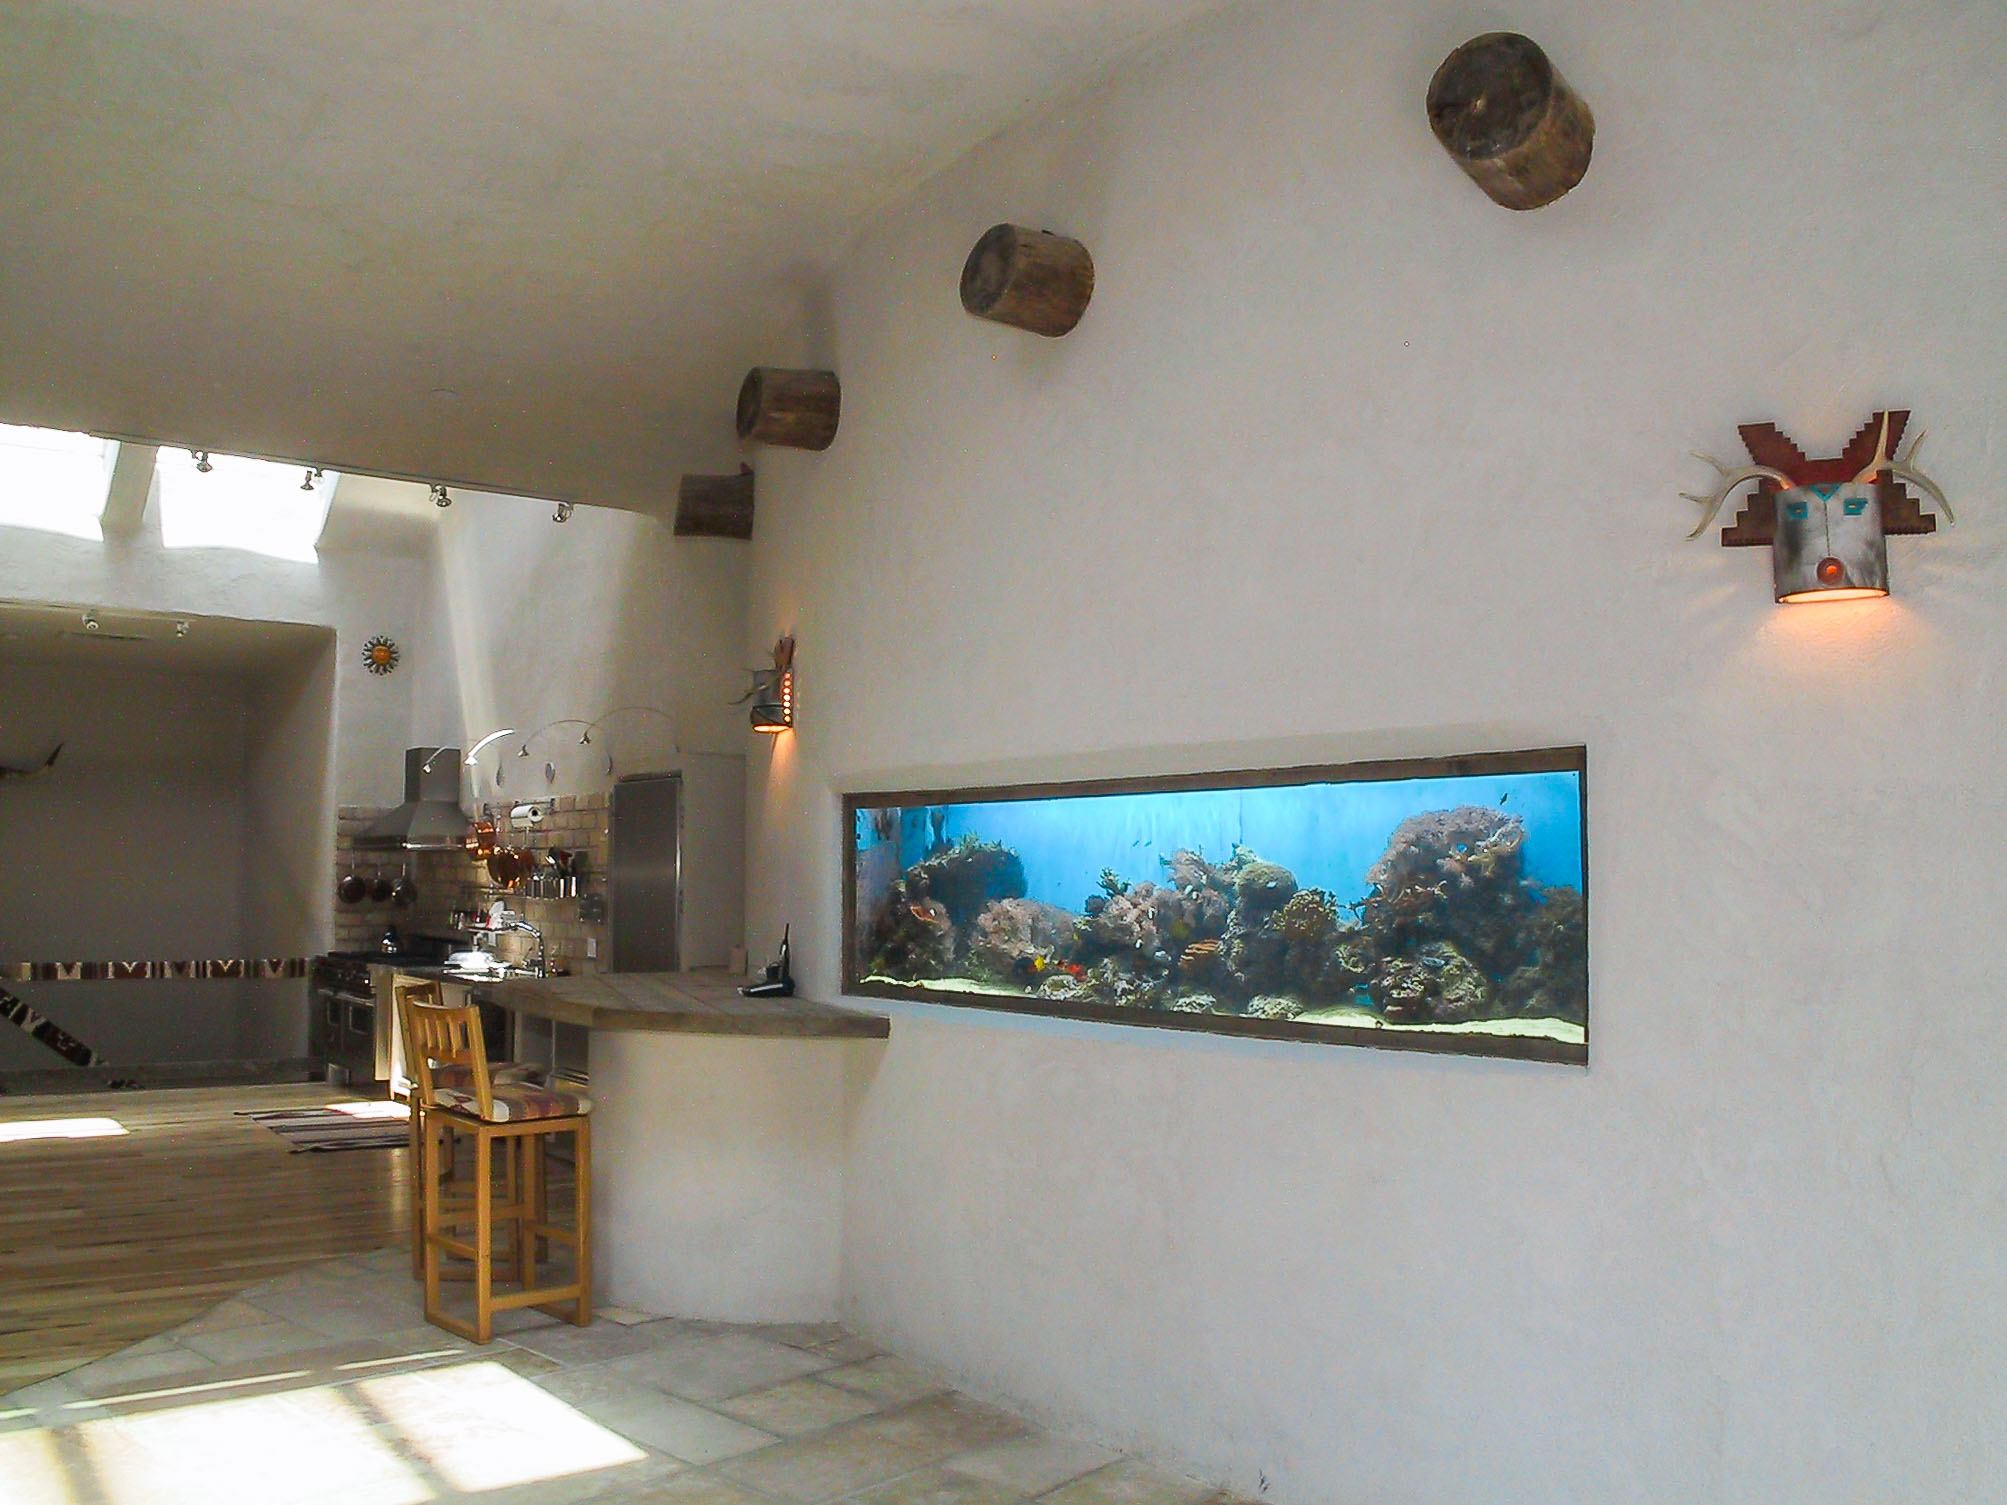 Salt Water Fish tank in living room